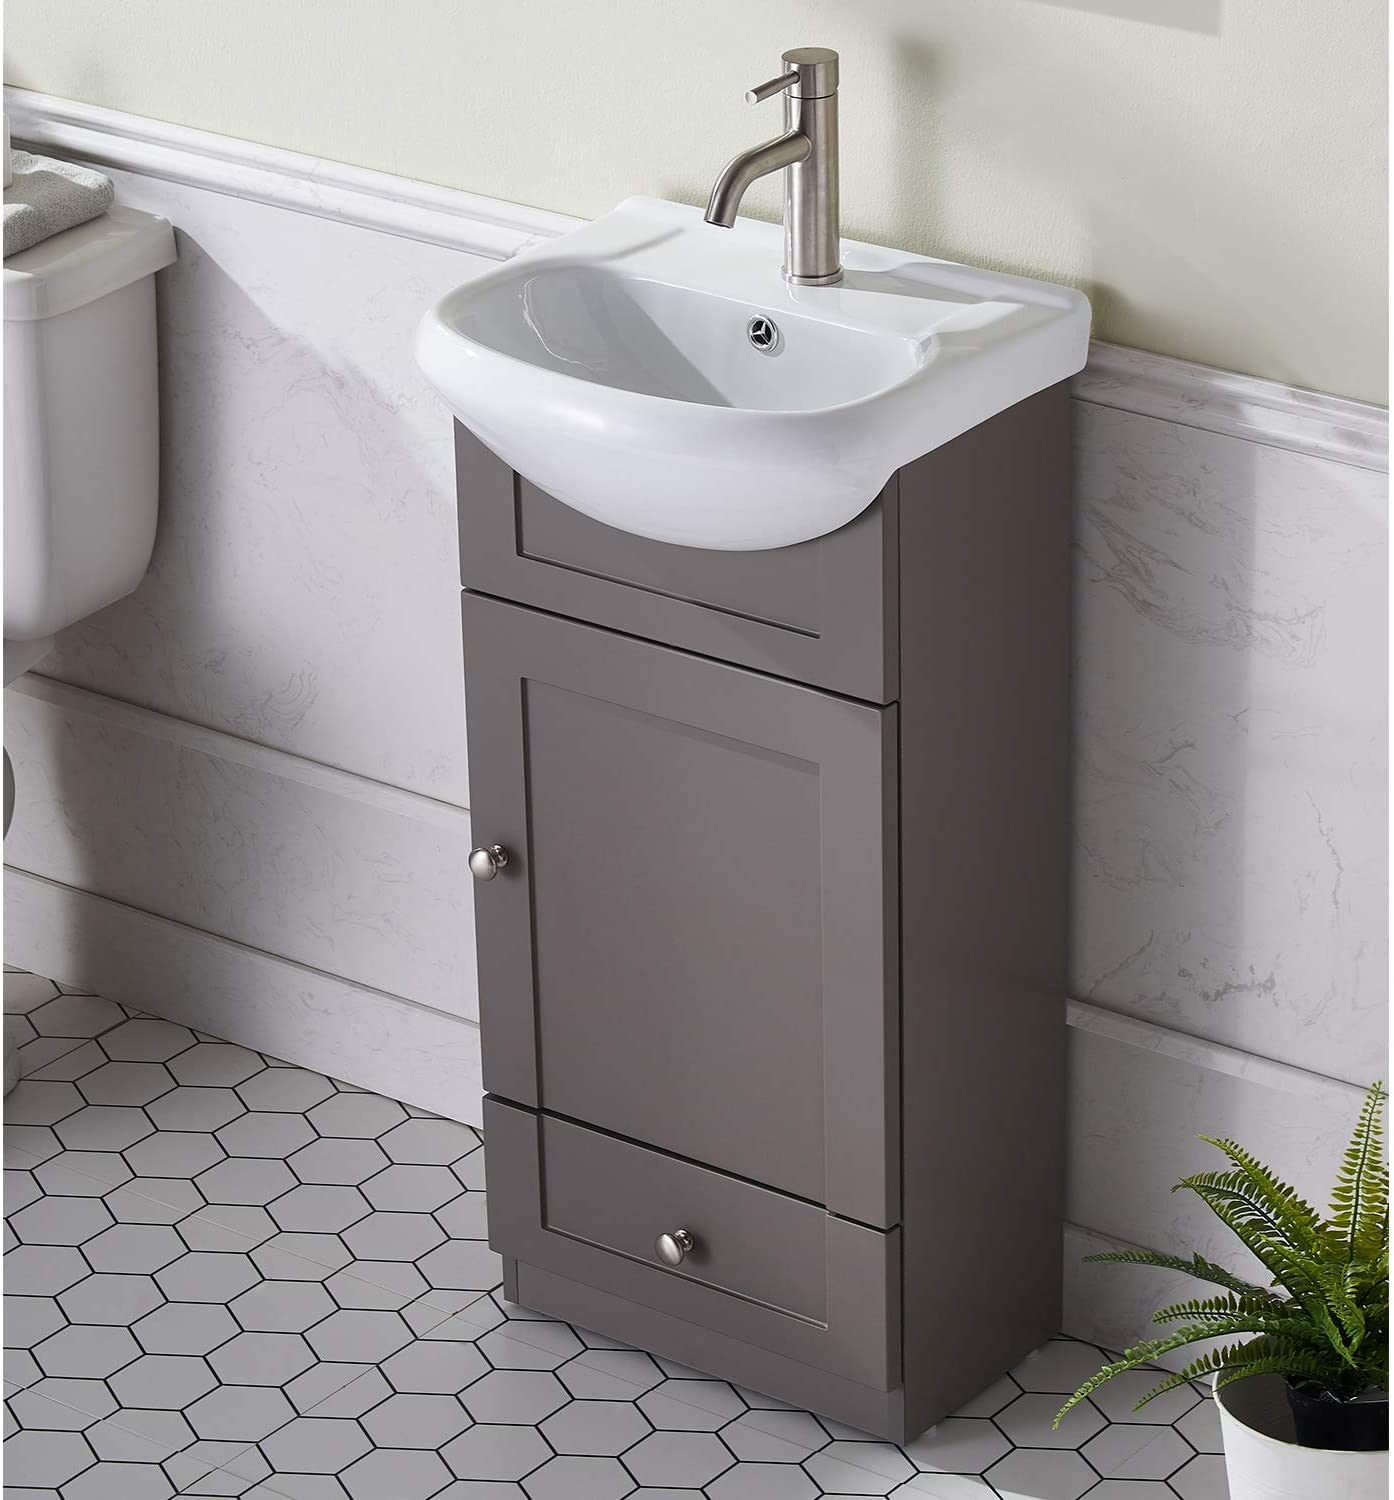 Amazon Com Modern Design 18 Grey Khaki Stand Bathroom Vanity For Small Space Bathroom Sink Vanity Combo Cabinet Set With White Countertop Ceramic Vessel Sink Kitchen Dining